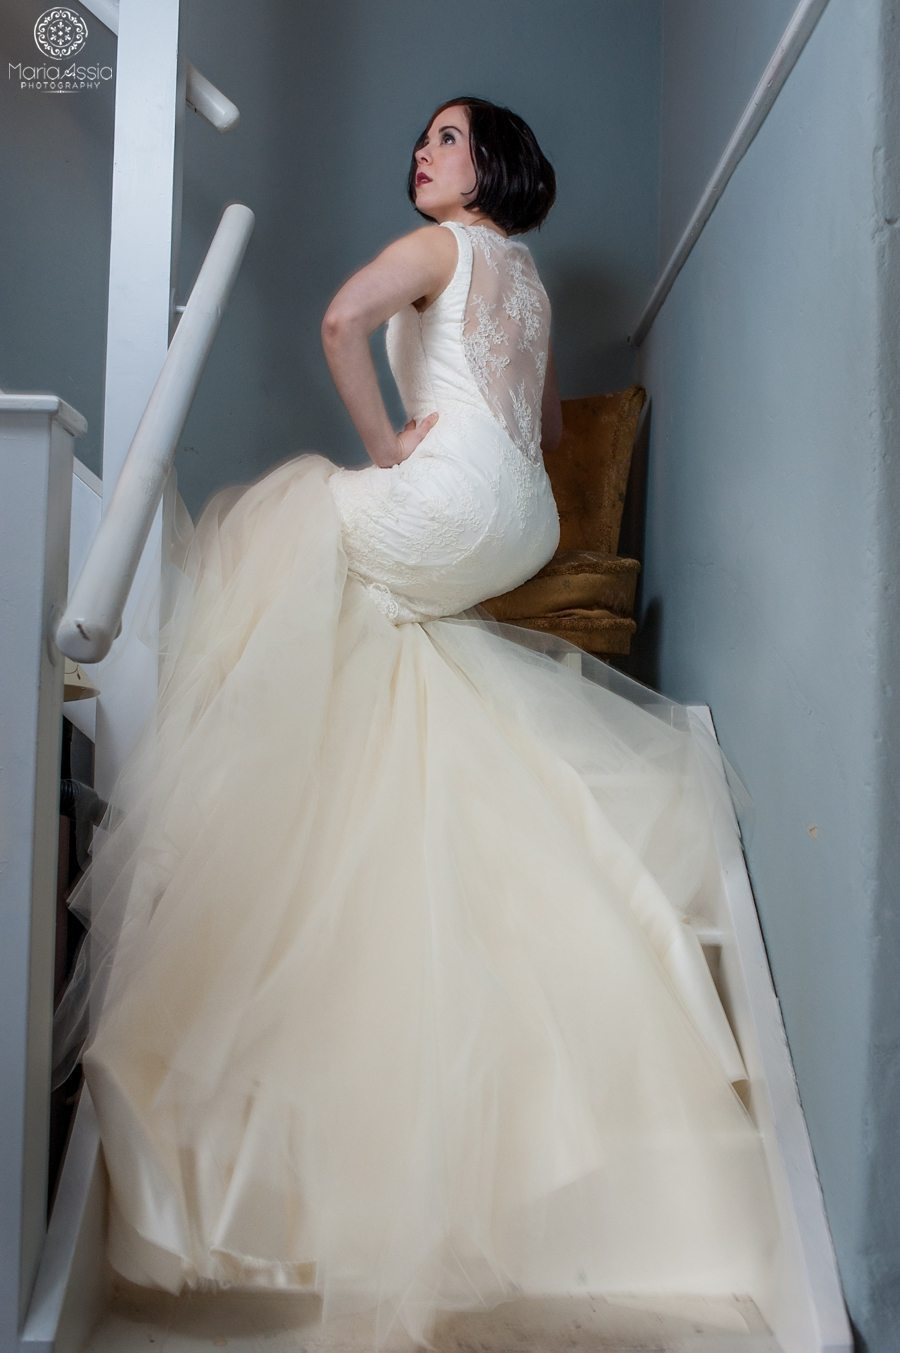 Bride looking up the stairs